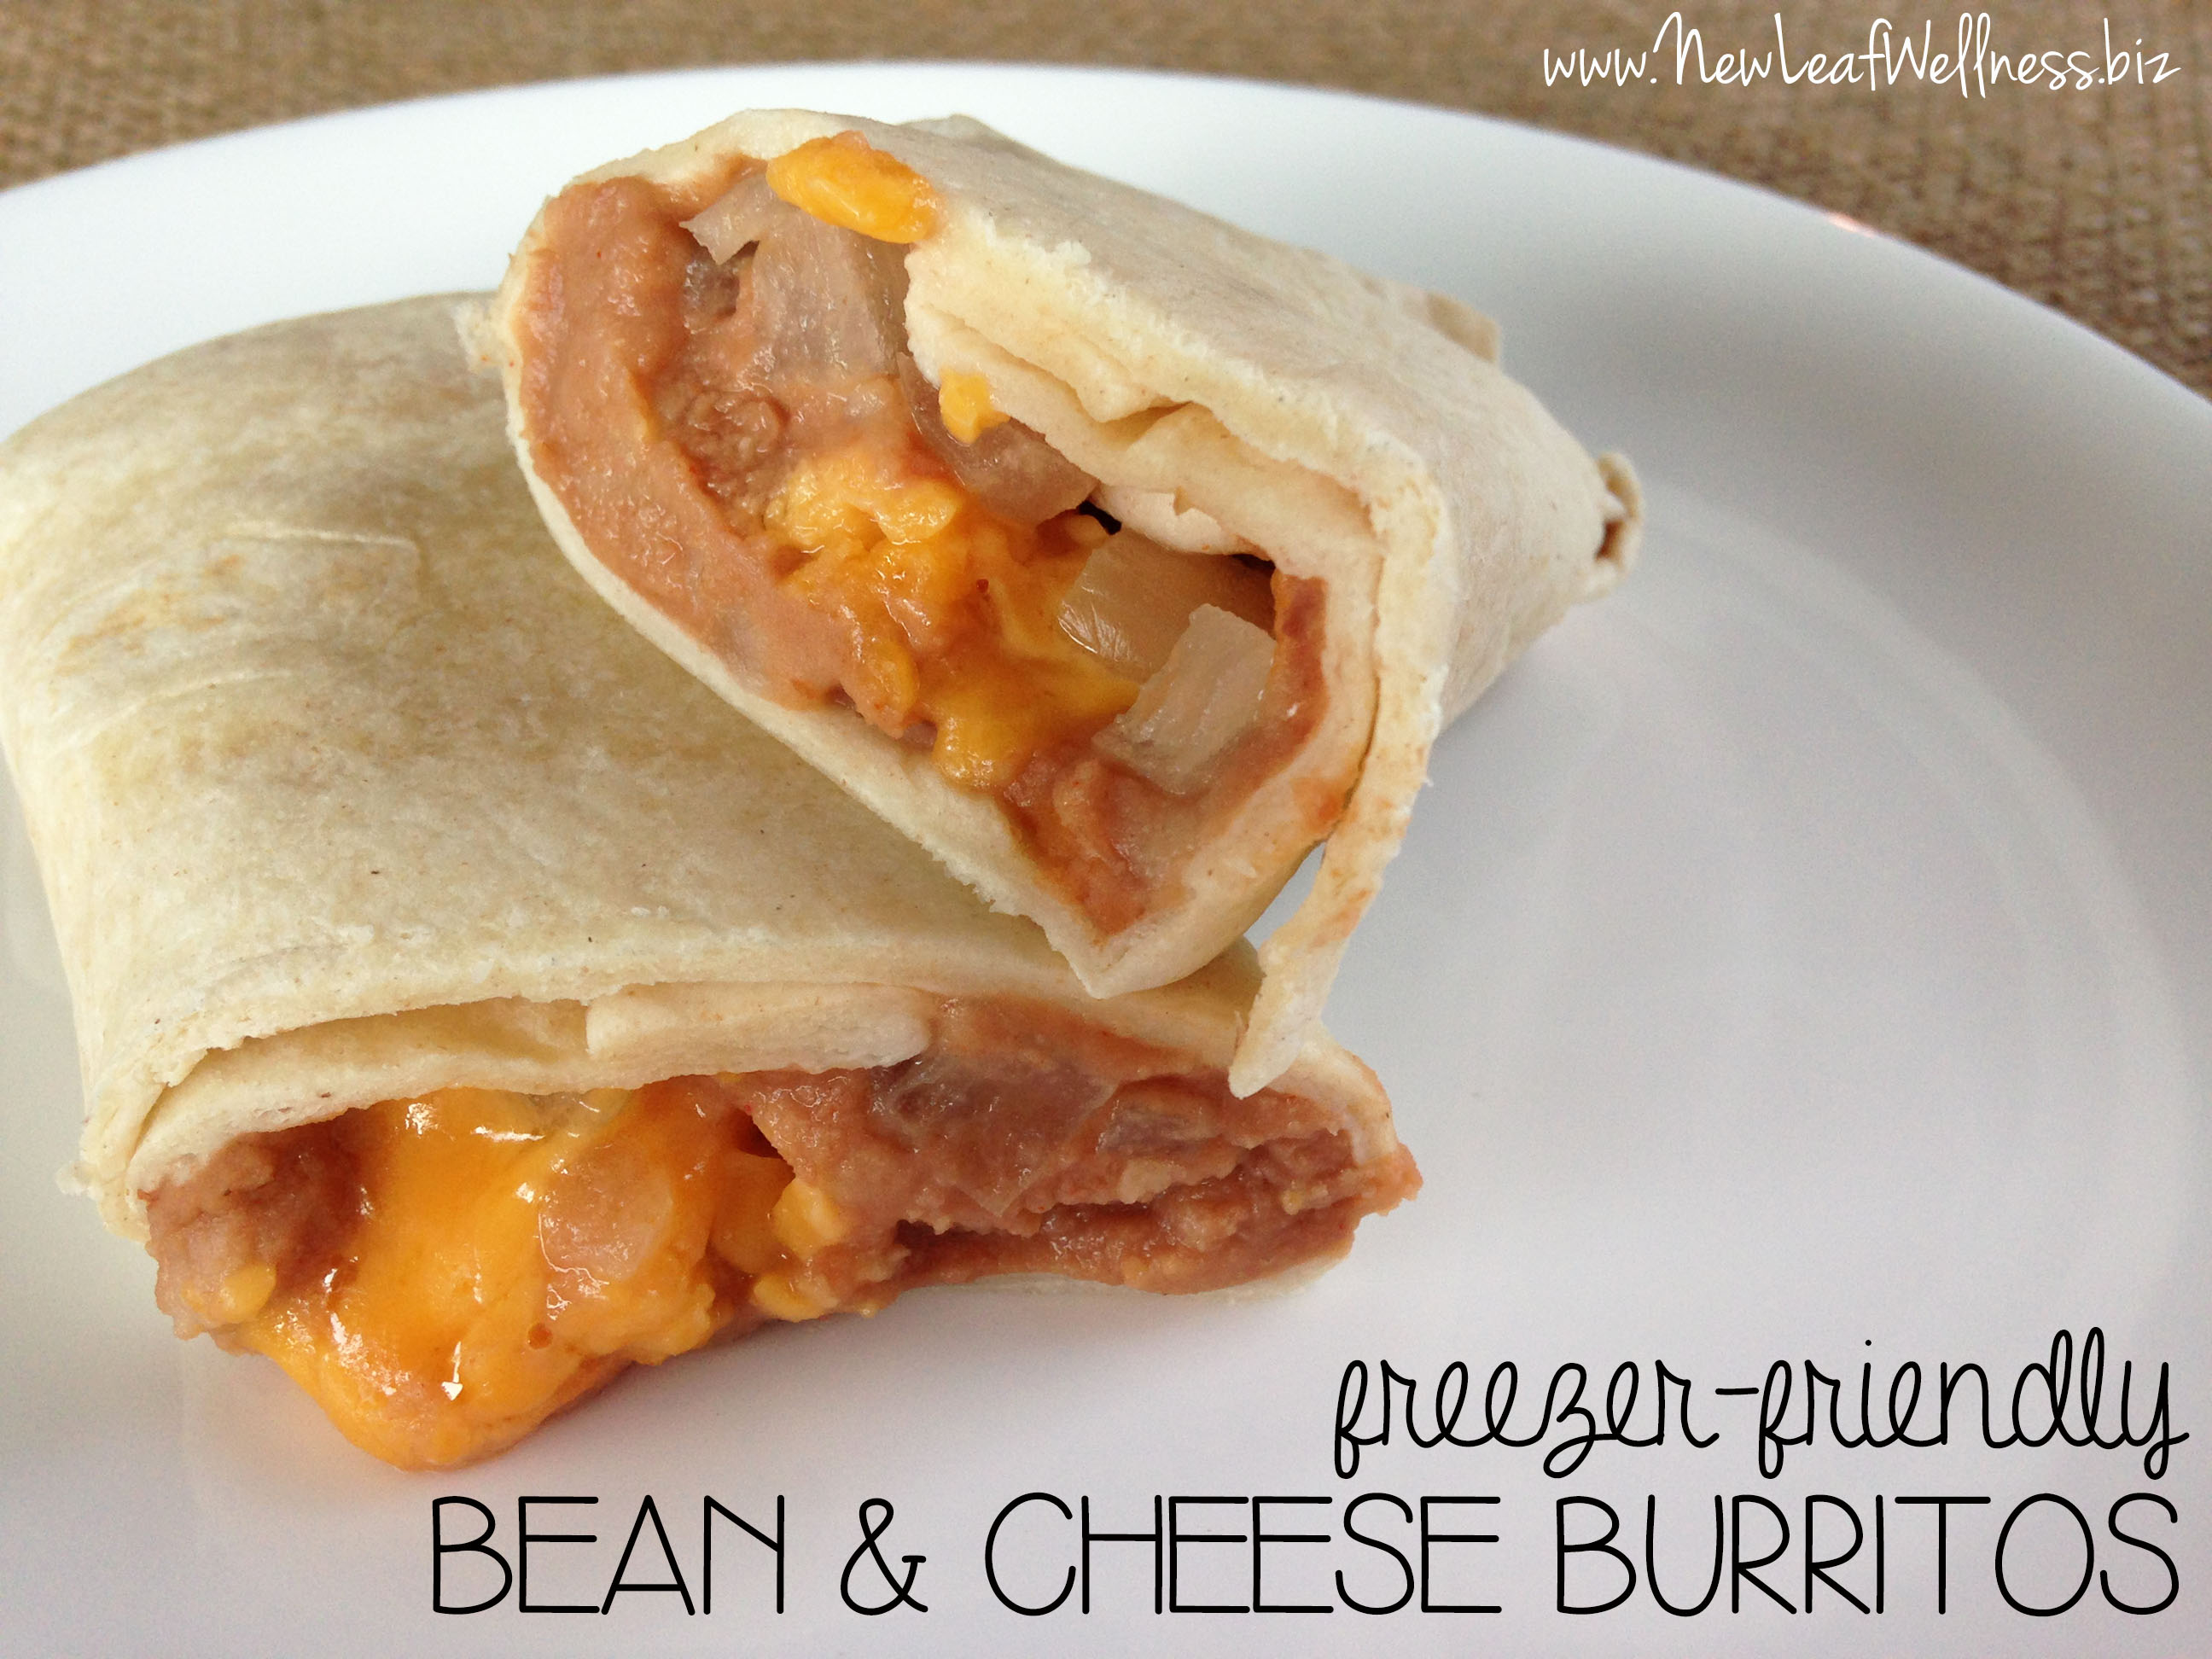 Freezer friendly bean and cheese burritos | New Leaf Wellness